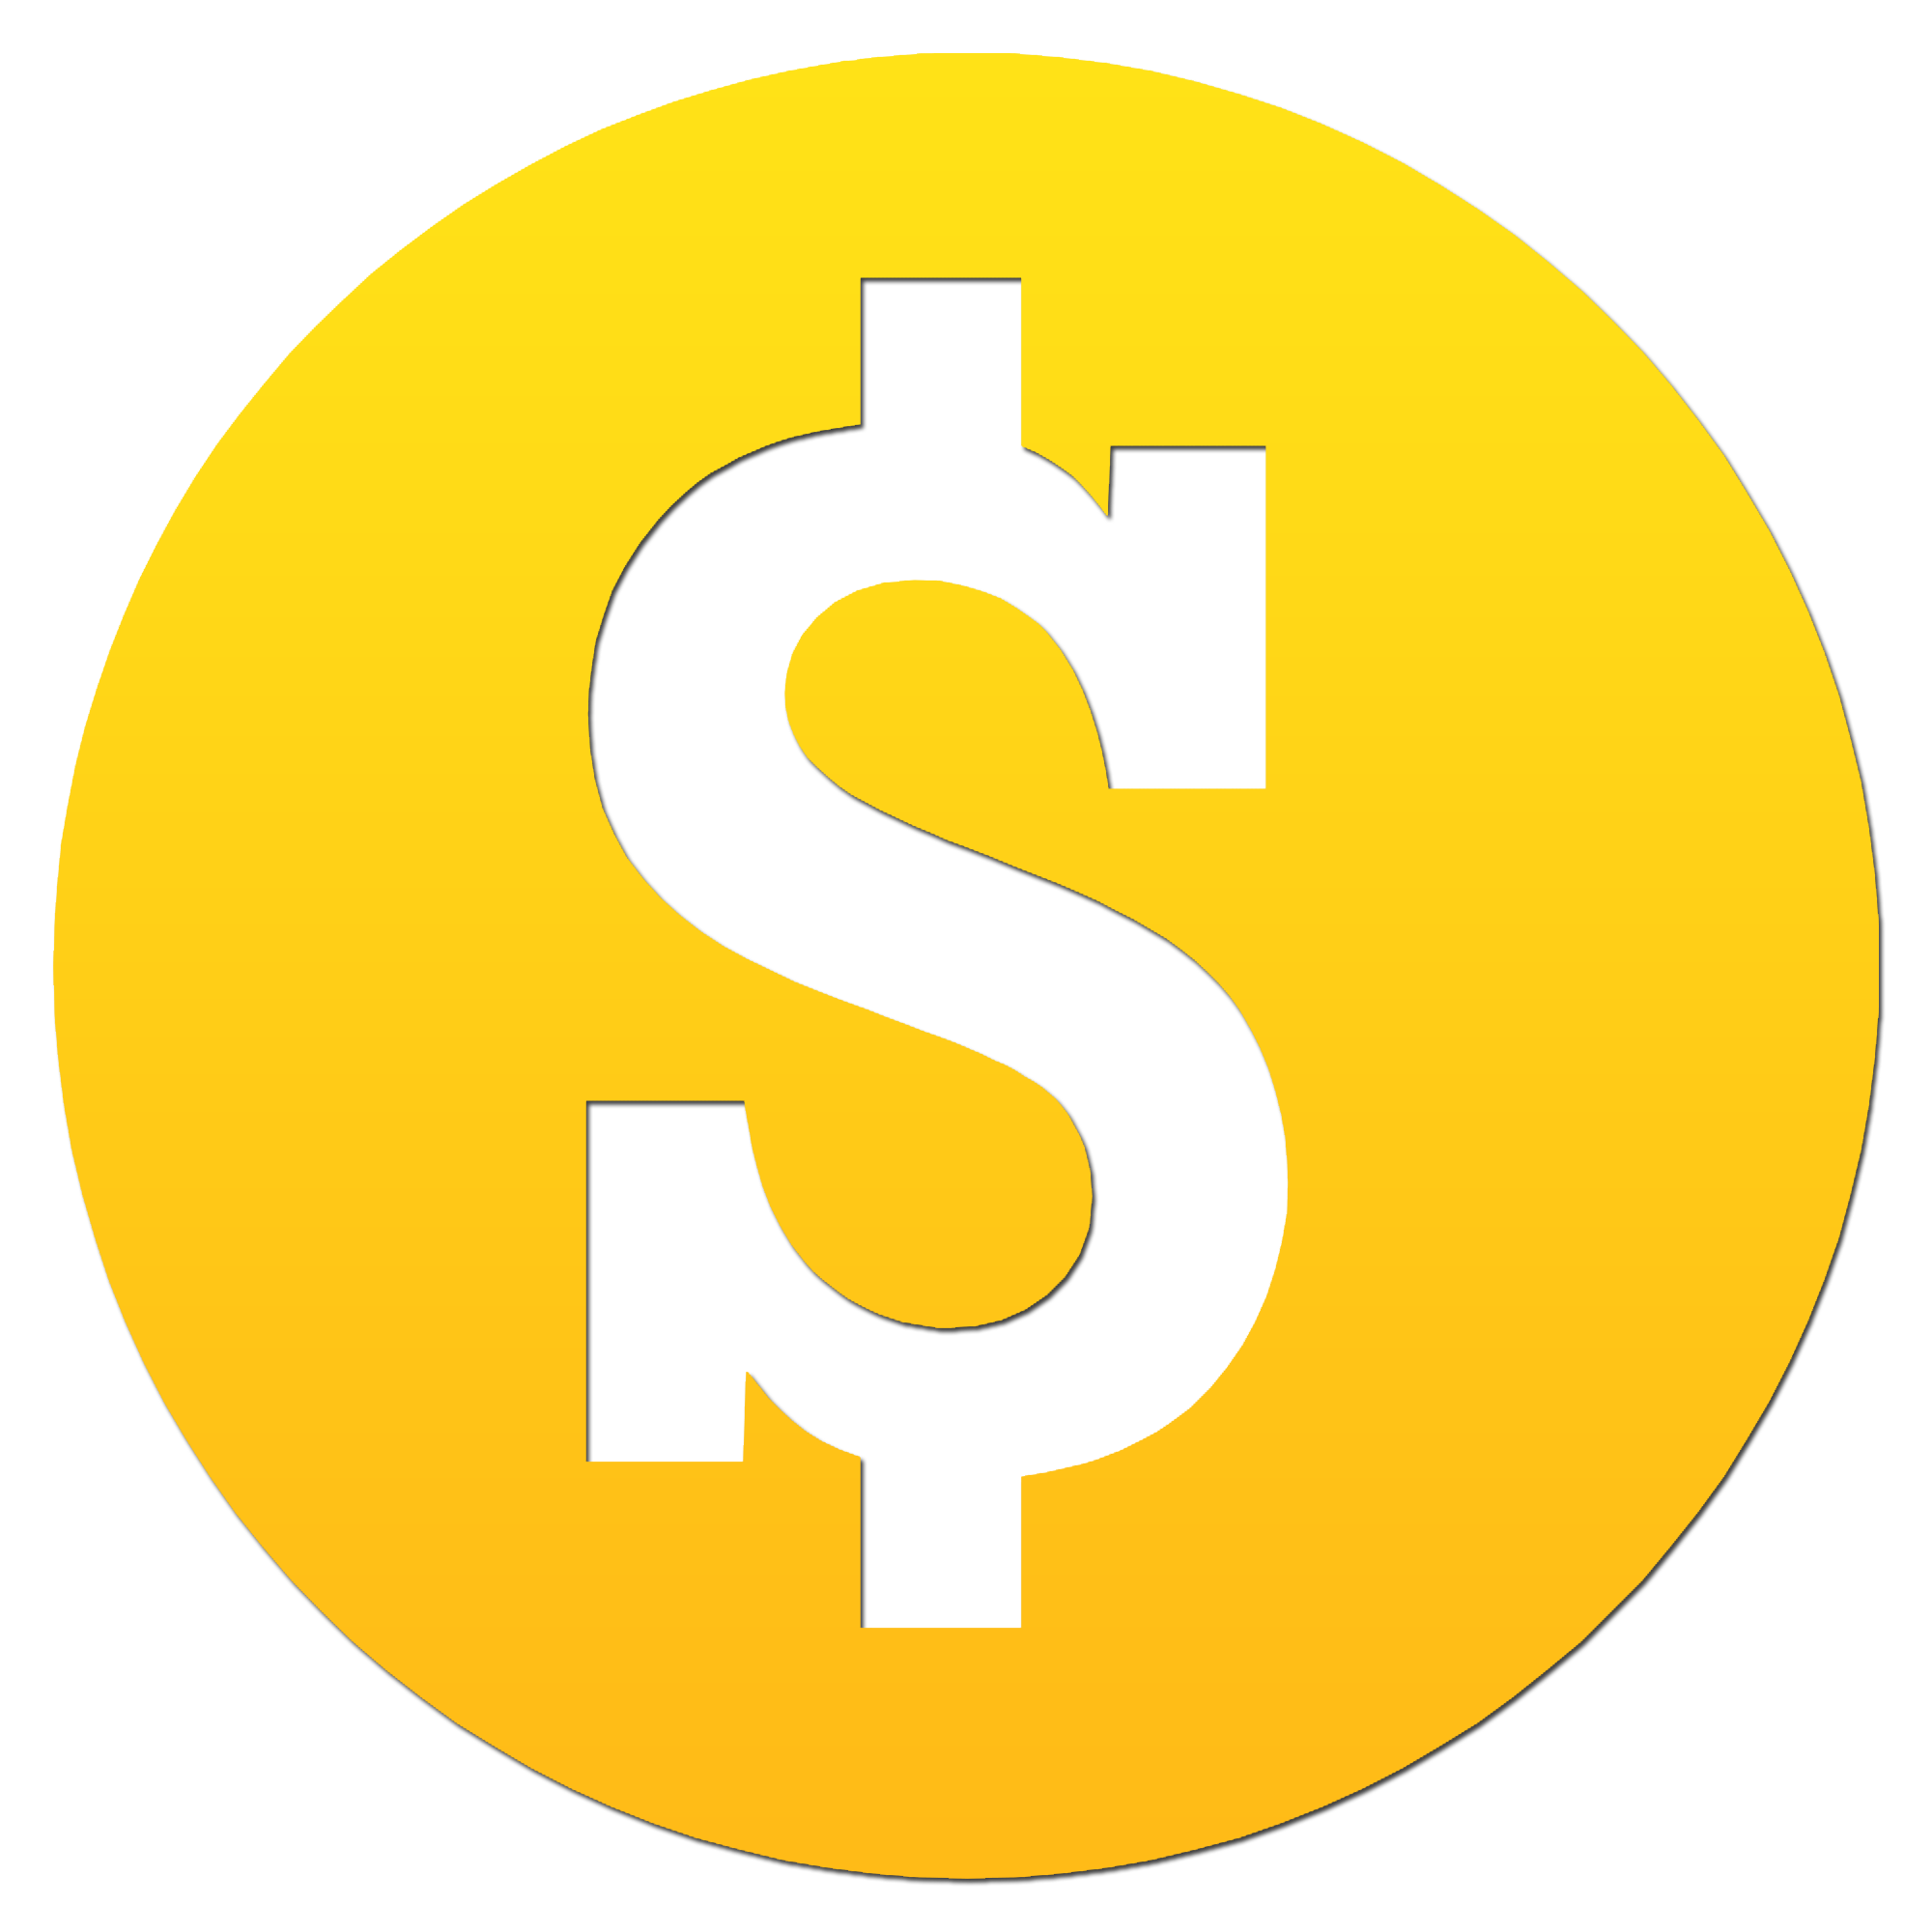 dollar sign png icon